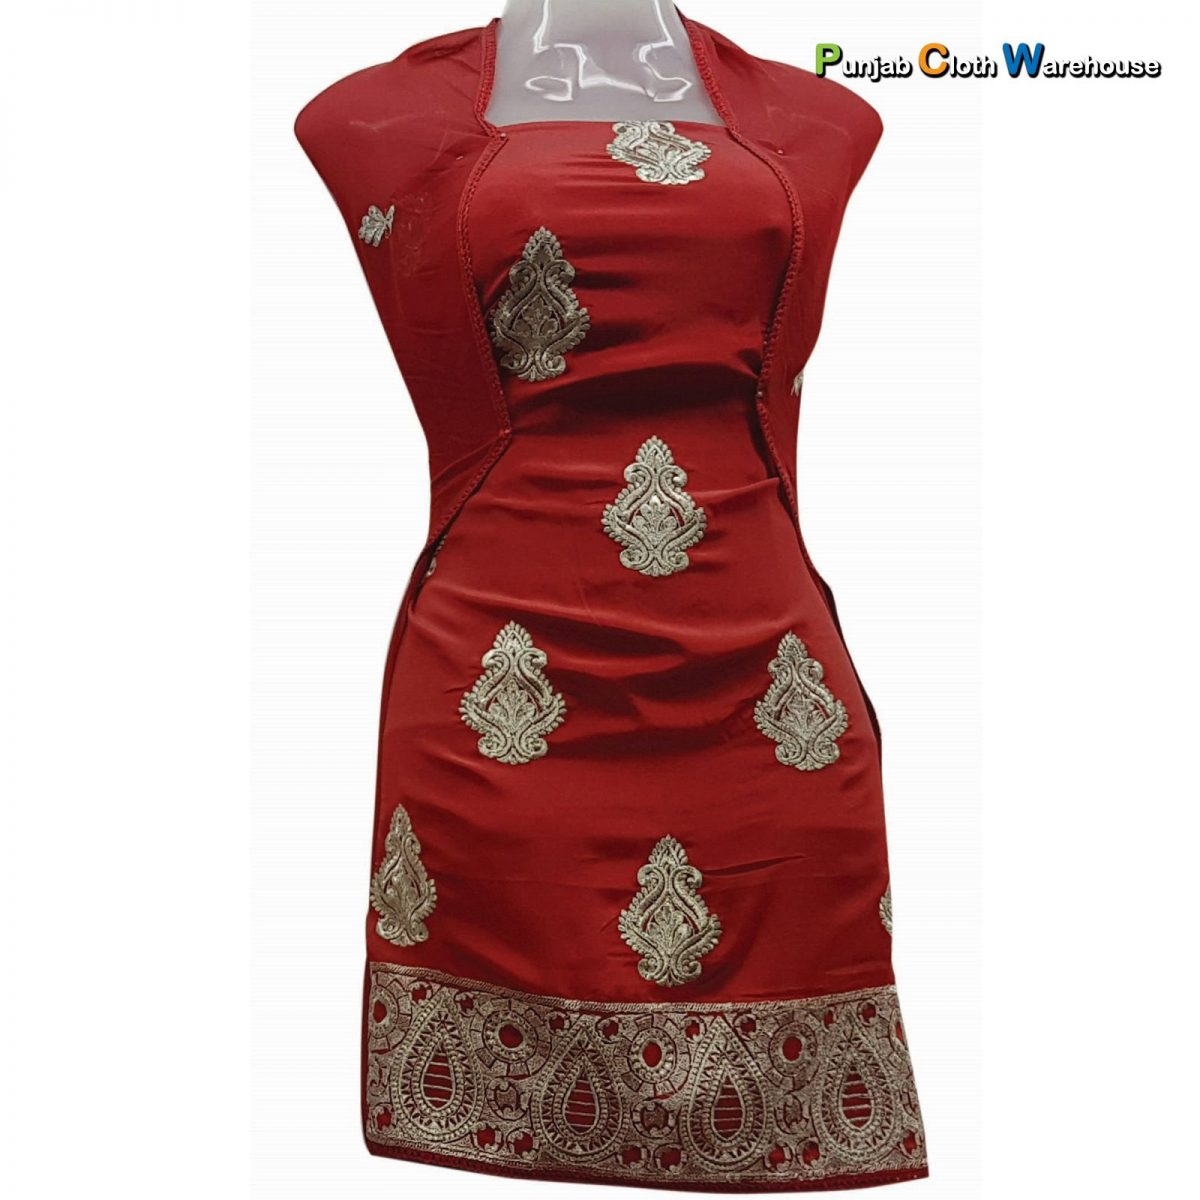 Ladies Suits - Cut Piece - Punjab Cloth Warehouse, Surrey (46)